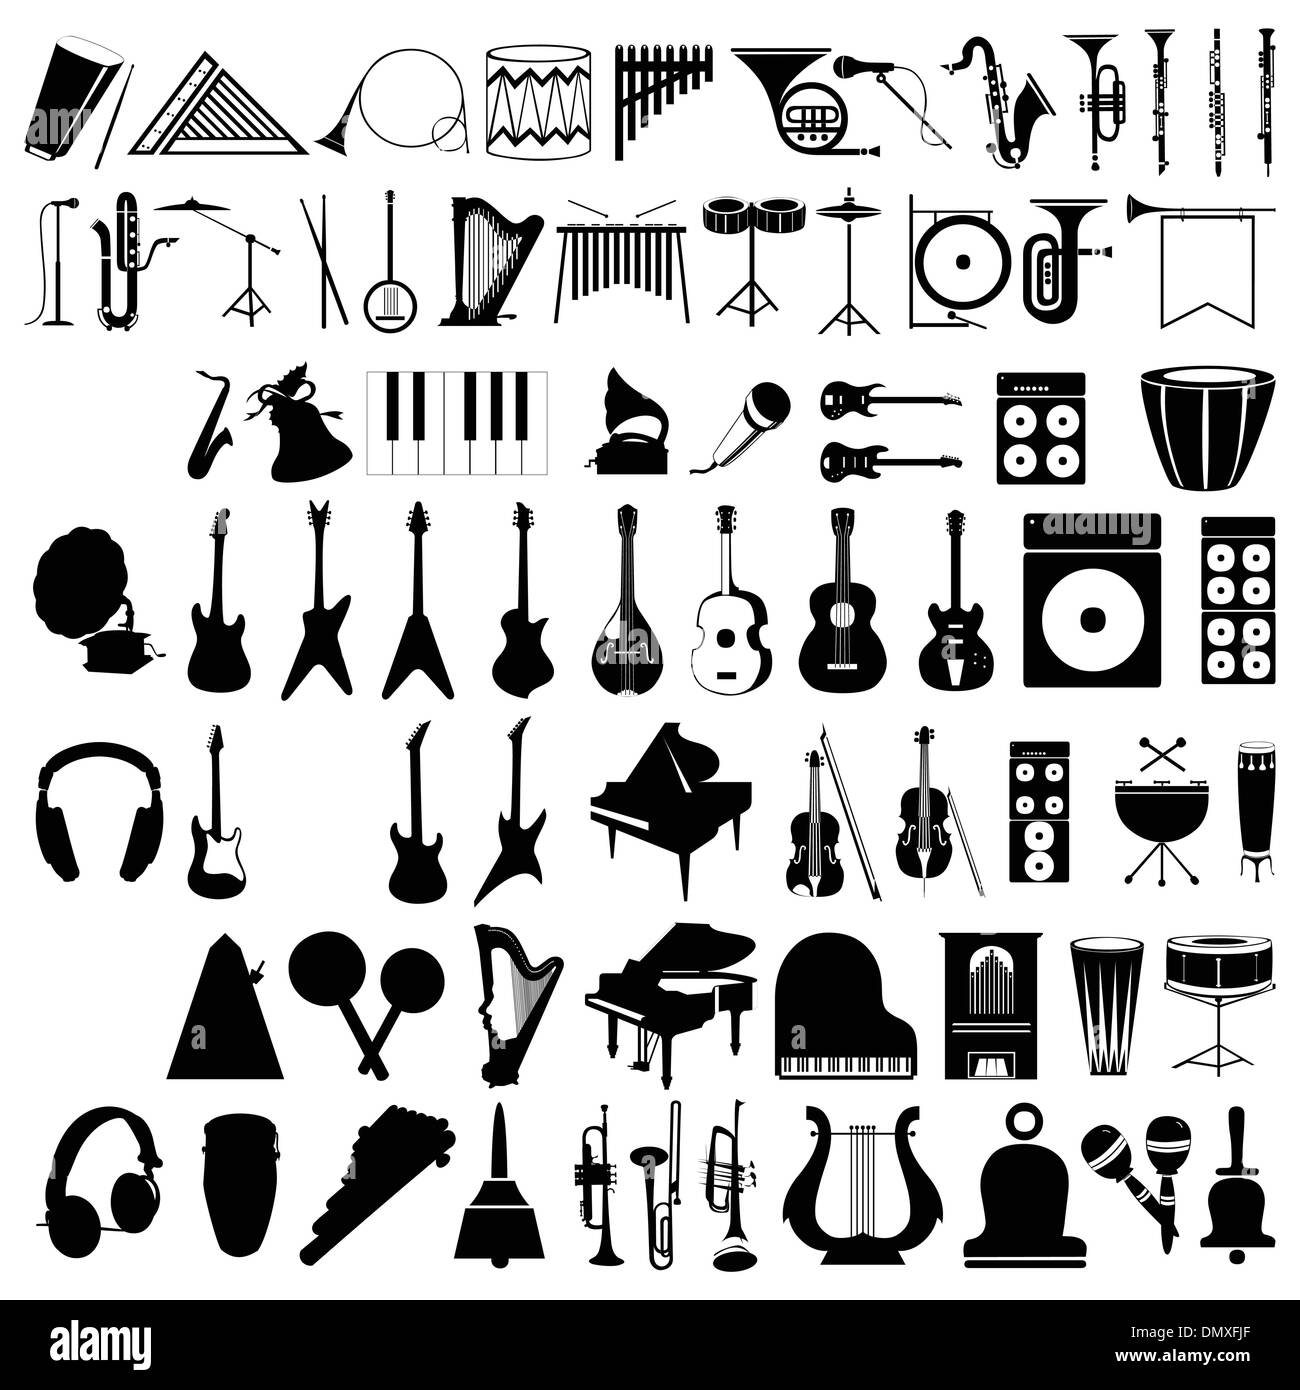 Musical instruments2 - Stock Image